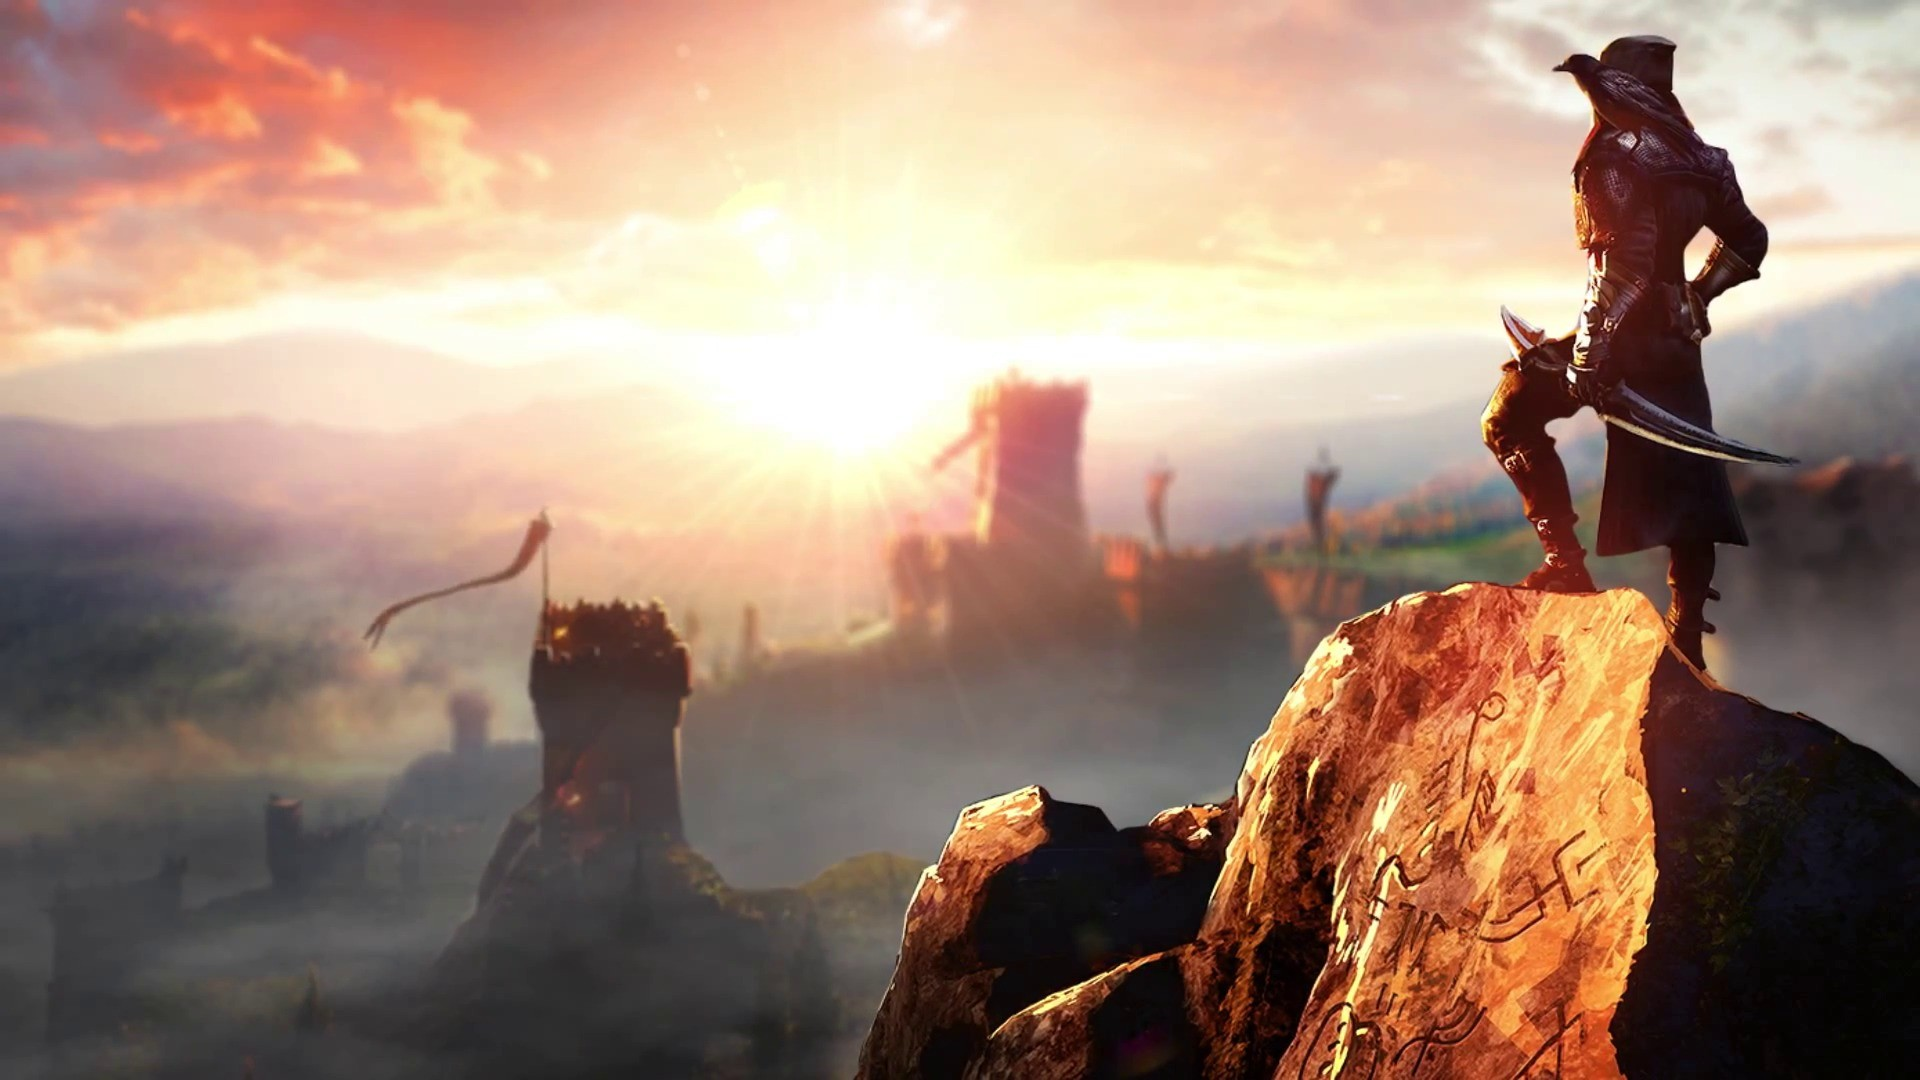 Dragon Age Wallpapers 1920x1080 90 Images